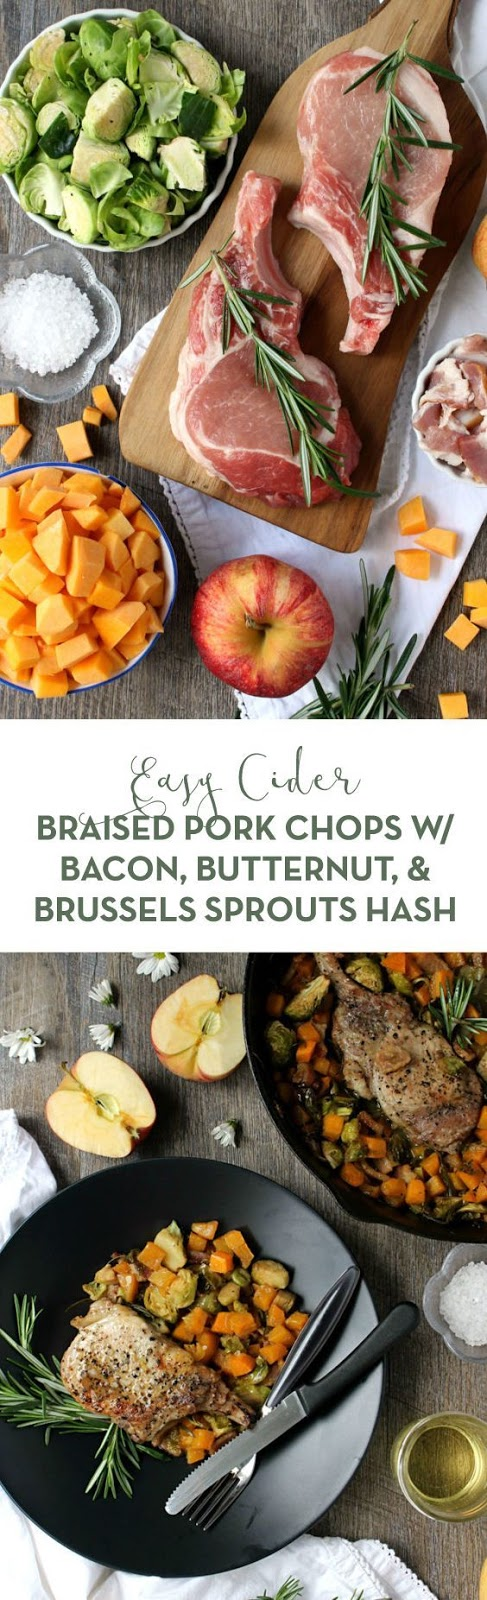 EASY CIDER BRAISED PORK CHOPS W/ BACON, BUTTERNUT, & BRUSSELS SPROUTS HASH  #masonjar #healthy #recipes #greatist #vegetarian #breakfast #brunch  #legumes #chicken #casseroles #tortilla #homemade #popularrcipes #poultry #delicious #pastafoodrecipes  #Easy #Spices #ChopSuey #Soup #Classic #gingerbread #ginger #cake #classic #baking #dessert #recipes #christmas #dessertrecipes #Vegetarian #Food #Fish #Dessert #Lunch #Dinner #SnackRecipes #BeefRecipes #DrinkRecipes #CookbookRecipesEasy #HealthyRecipes #AllRecipes #ChickenRecipes #CookiesRecipes